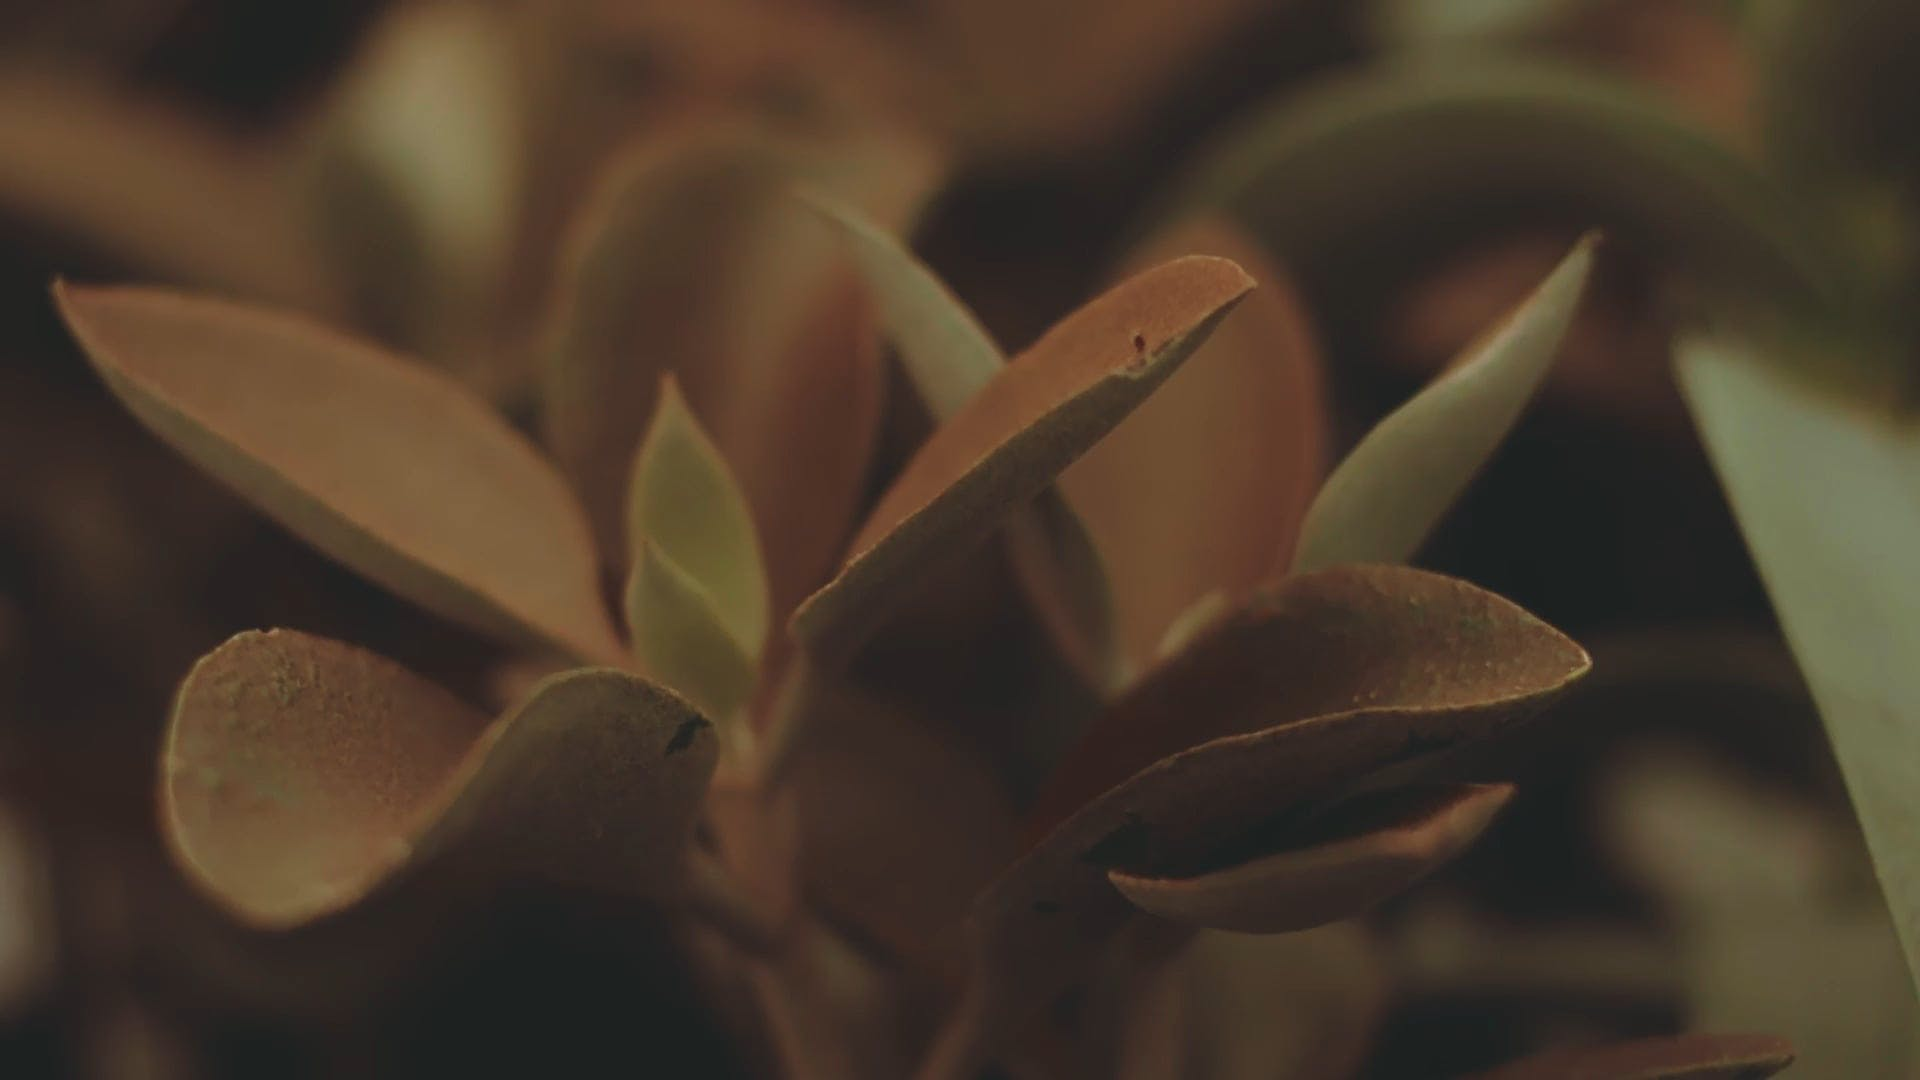 A Succulent Plant At Close View